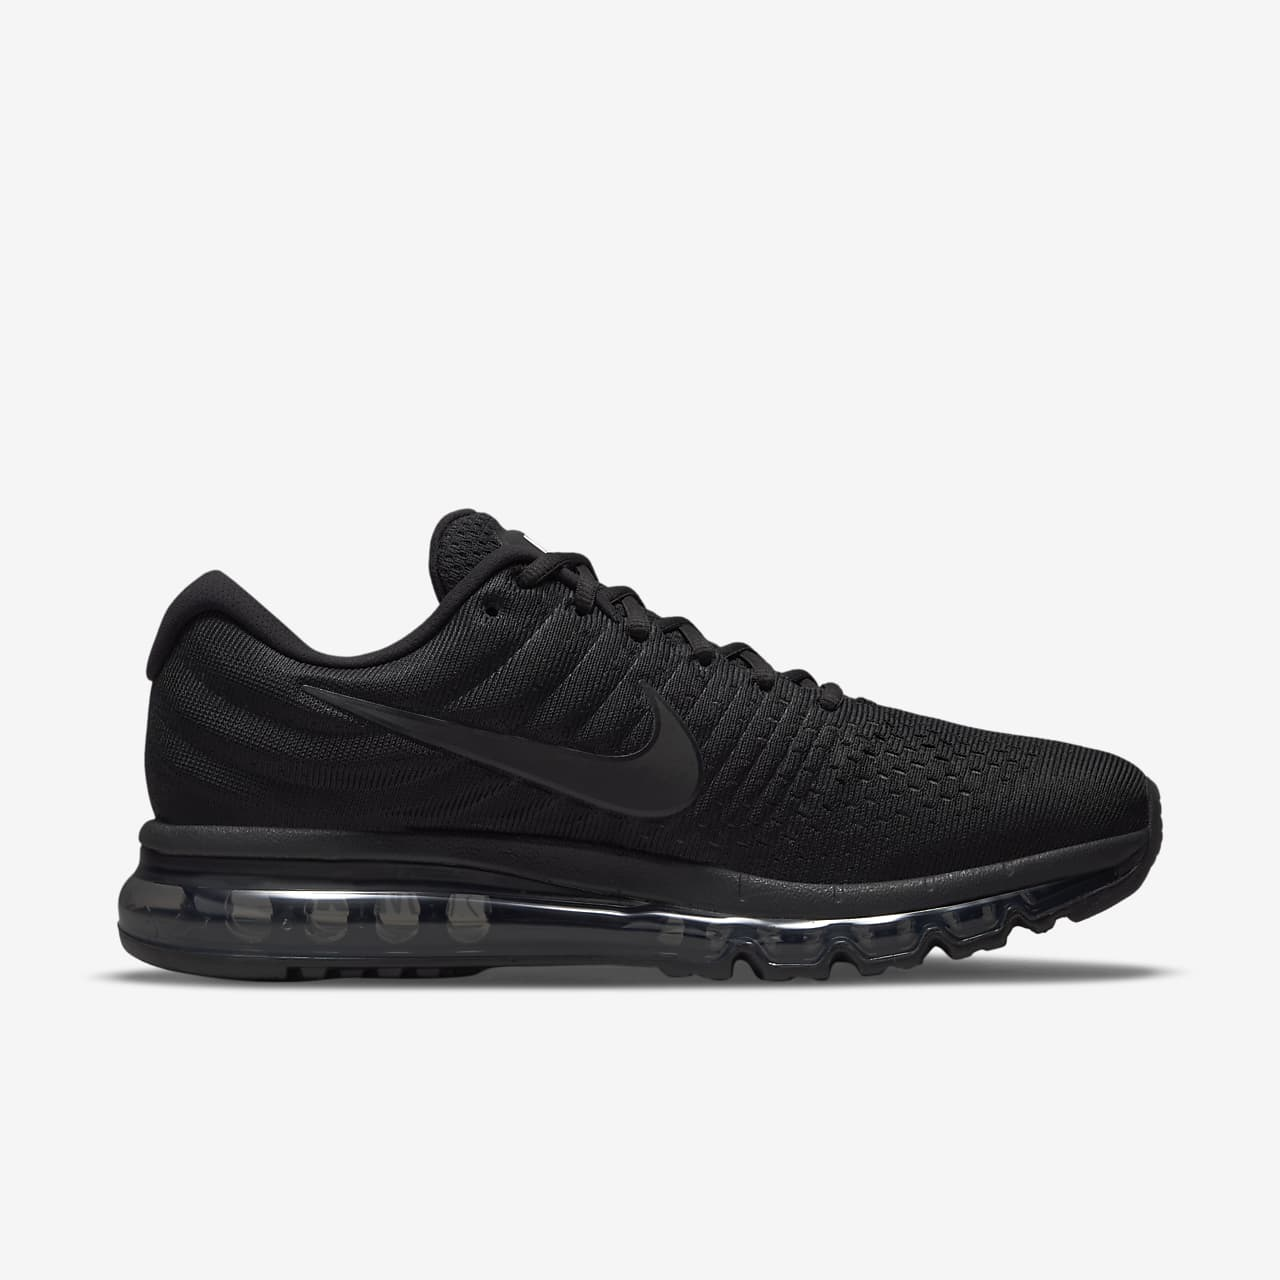 nike 2016 air max flyknit nz